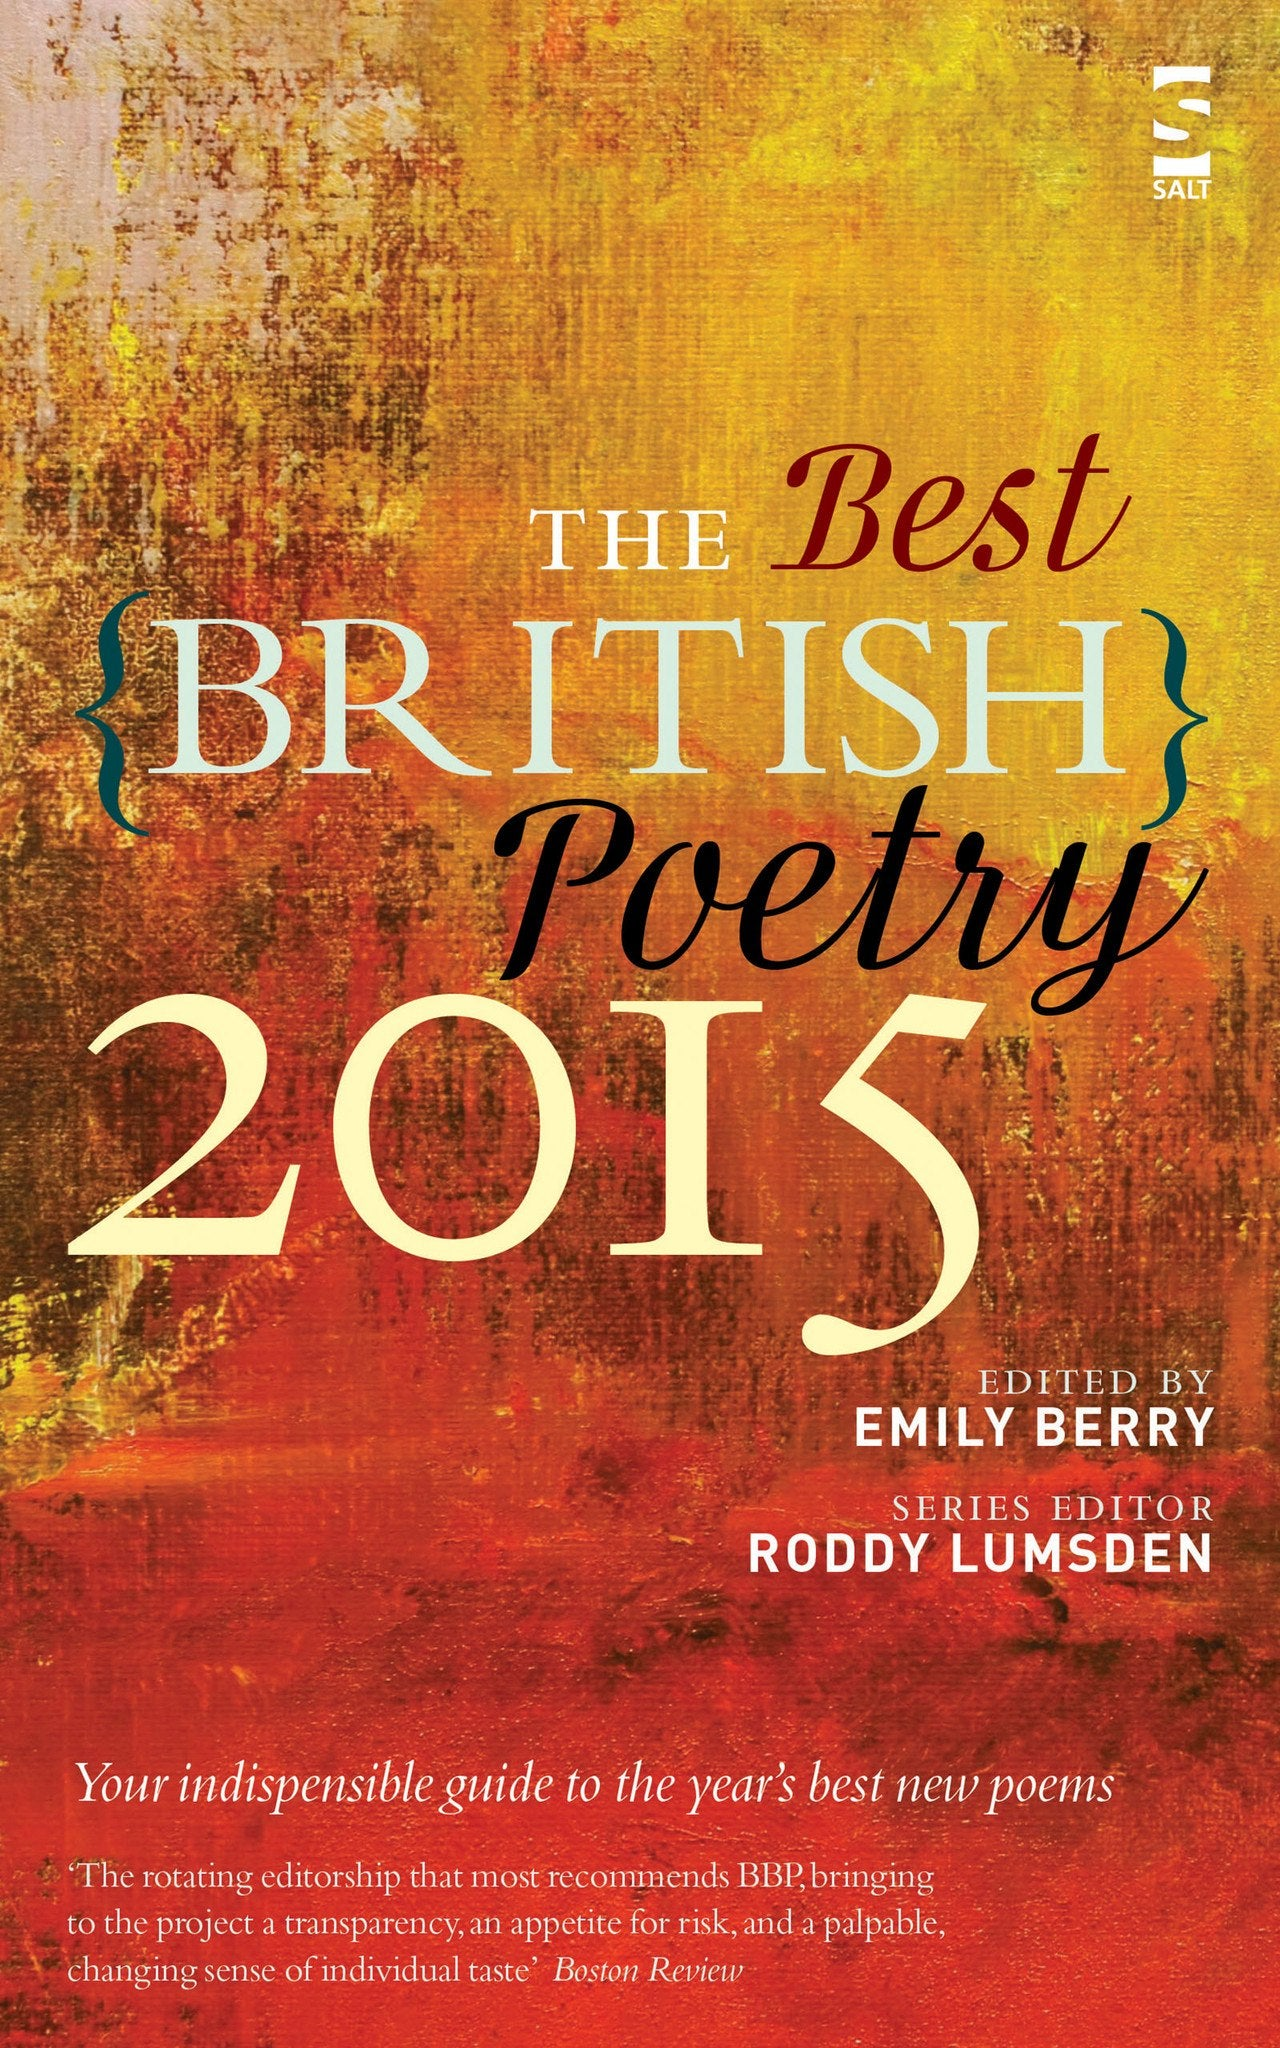 Best British Poetry 2015 By Emily Berry